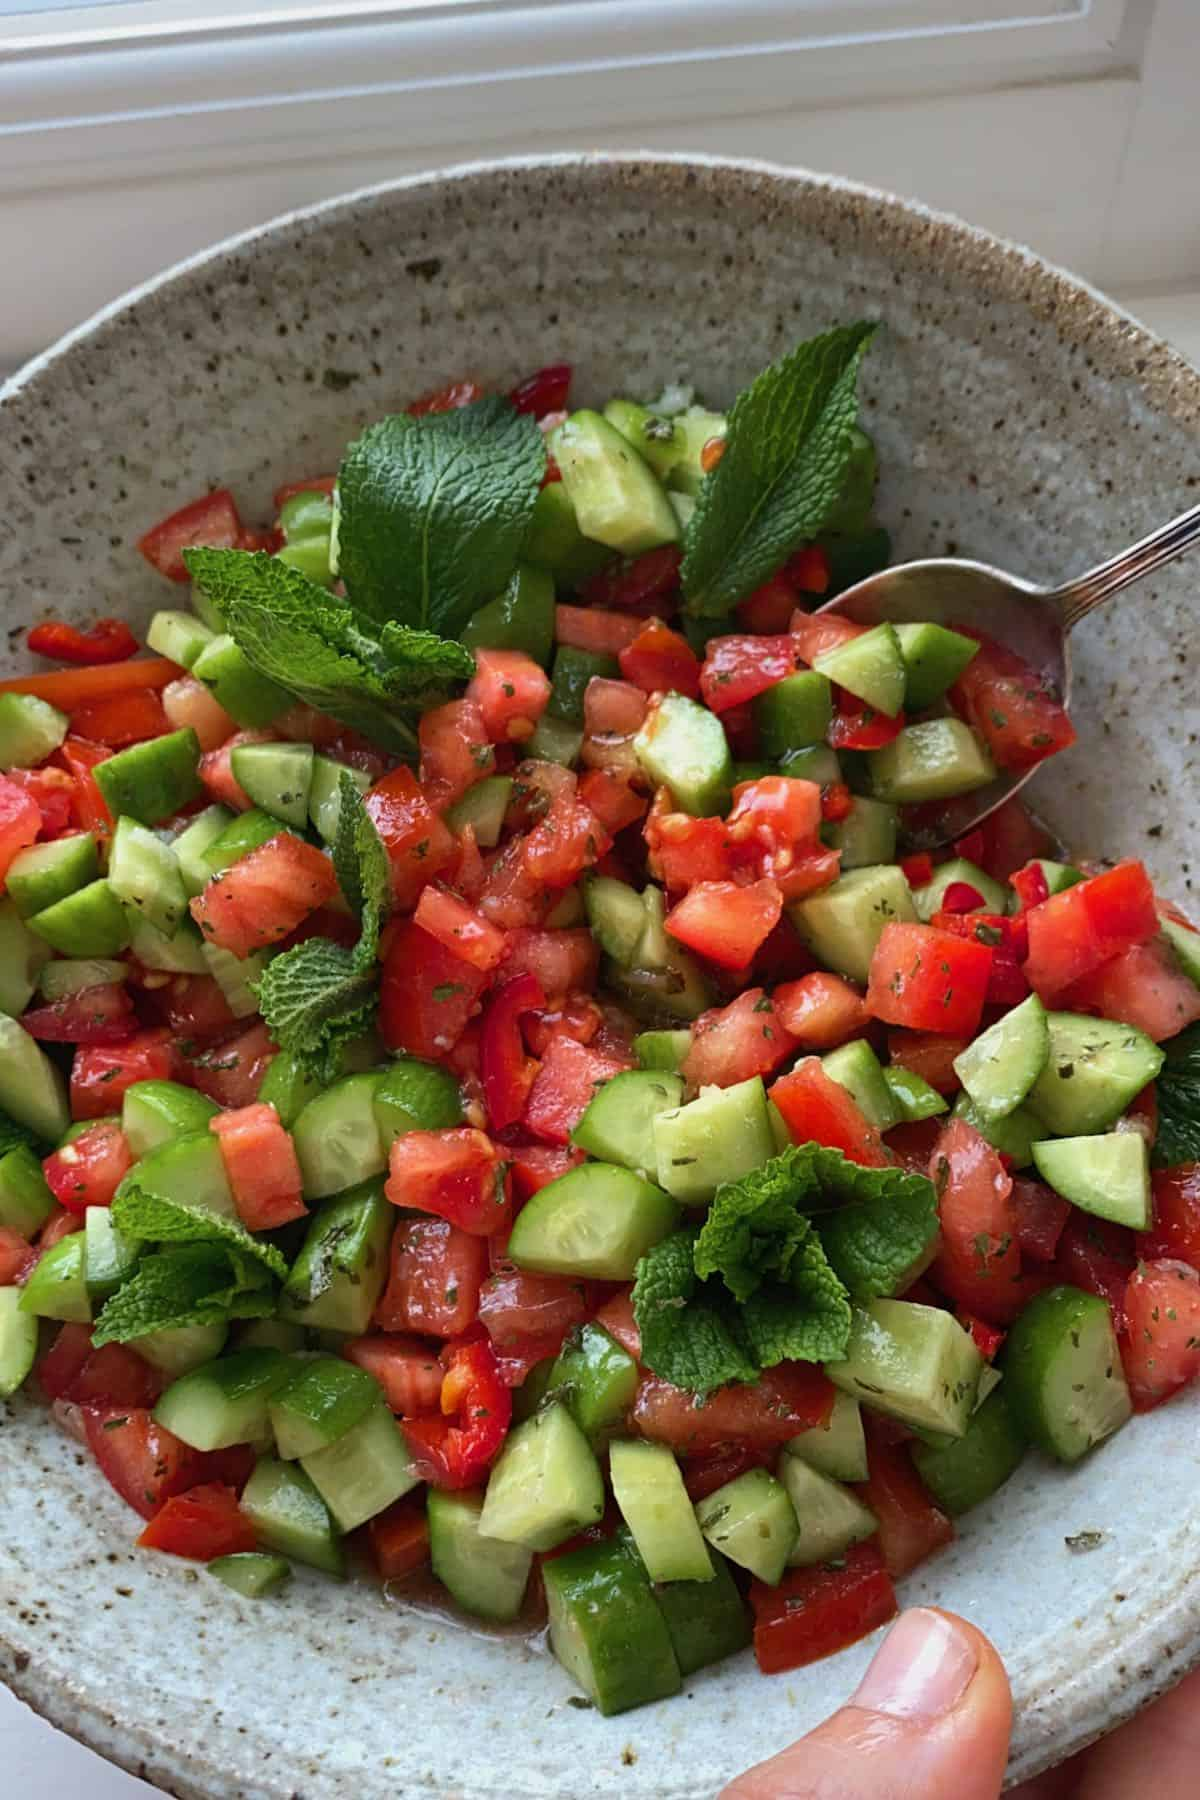 A bowl of tomato and cucumber salad with a spoon